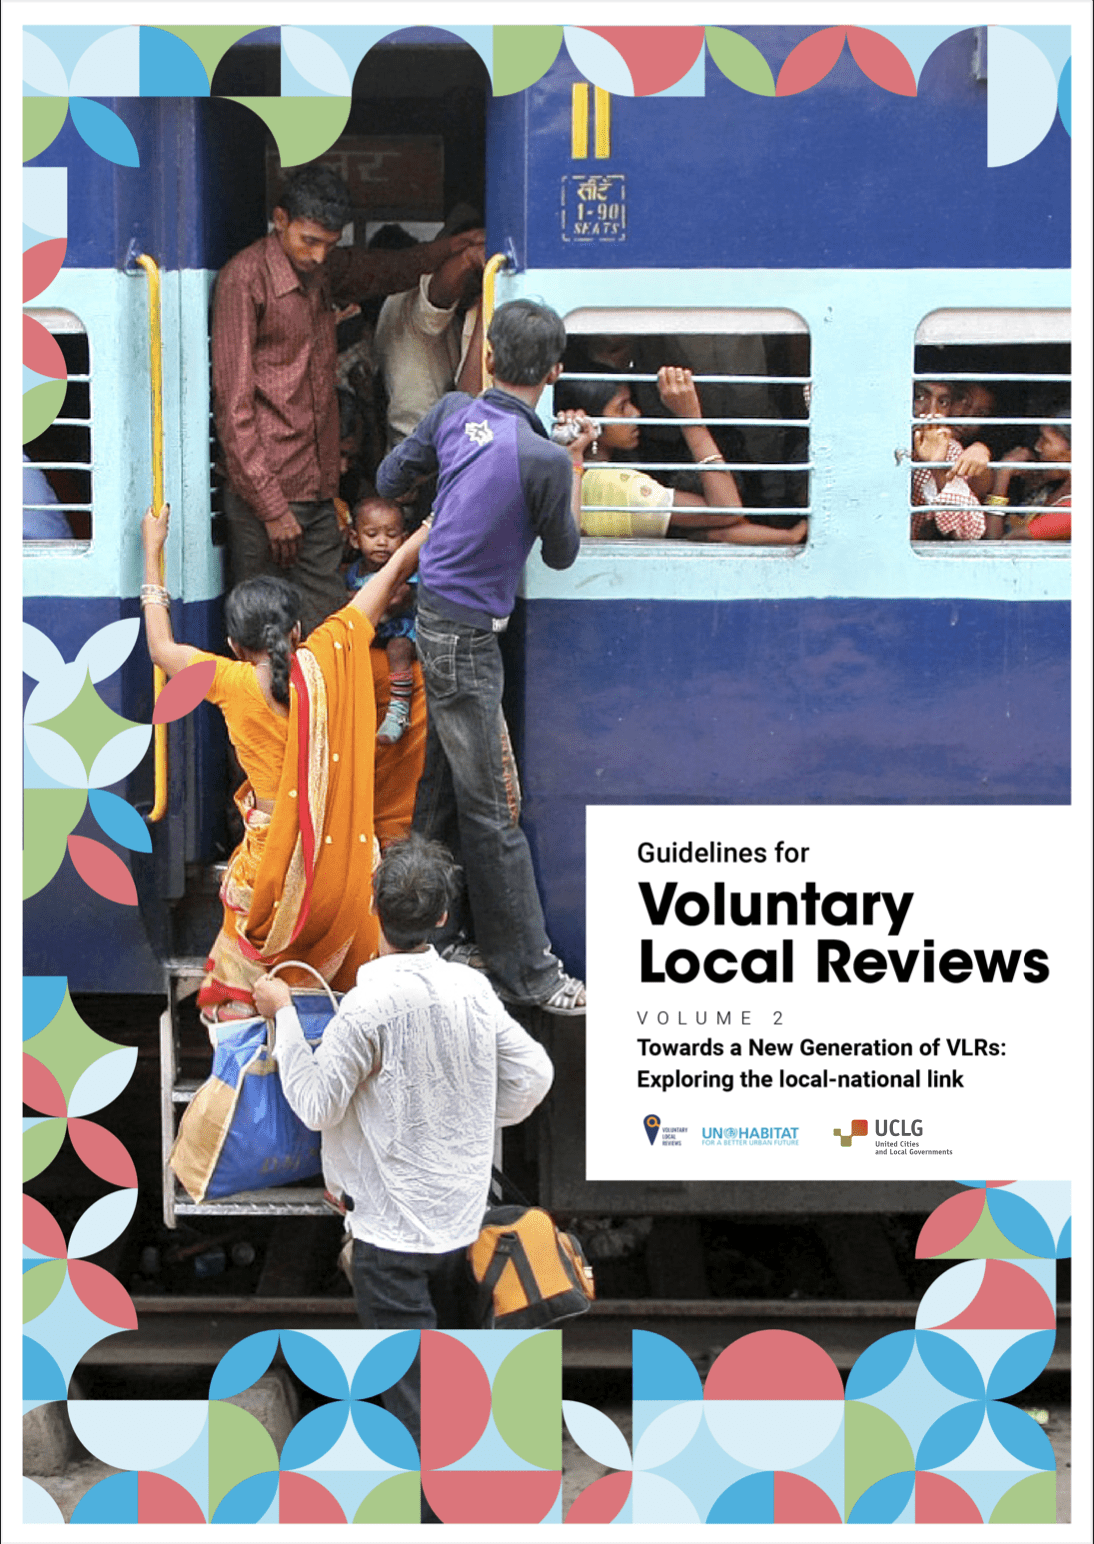 Guidelines for Voluntary Local Reviews vol 2 cover